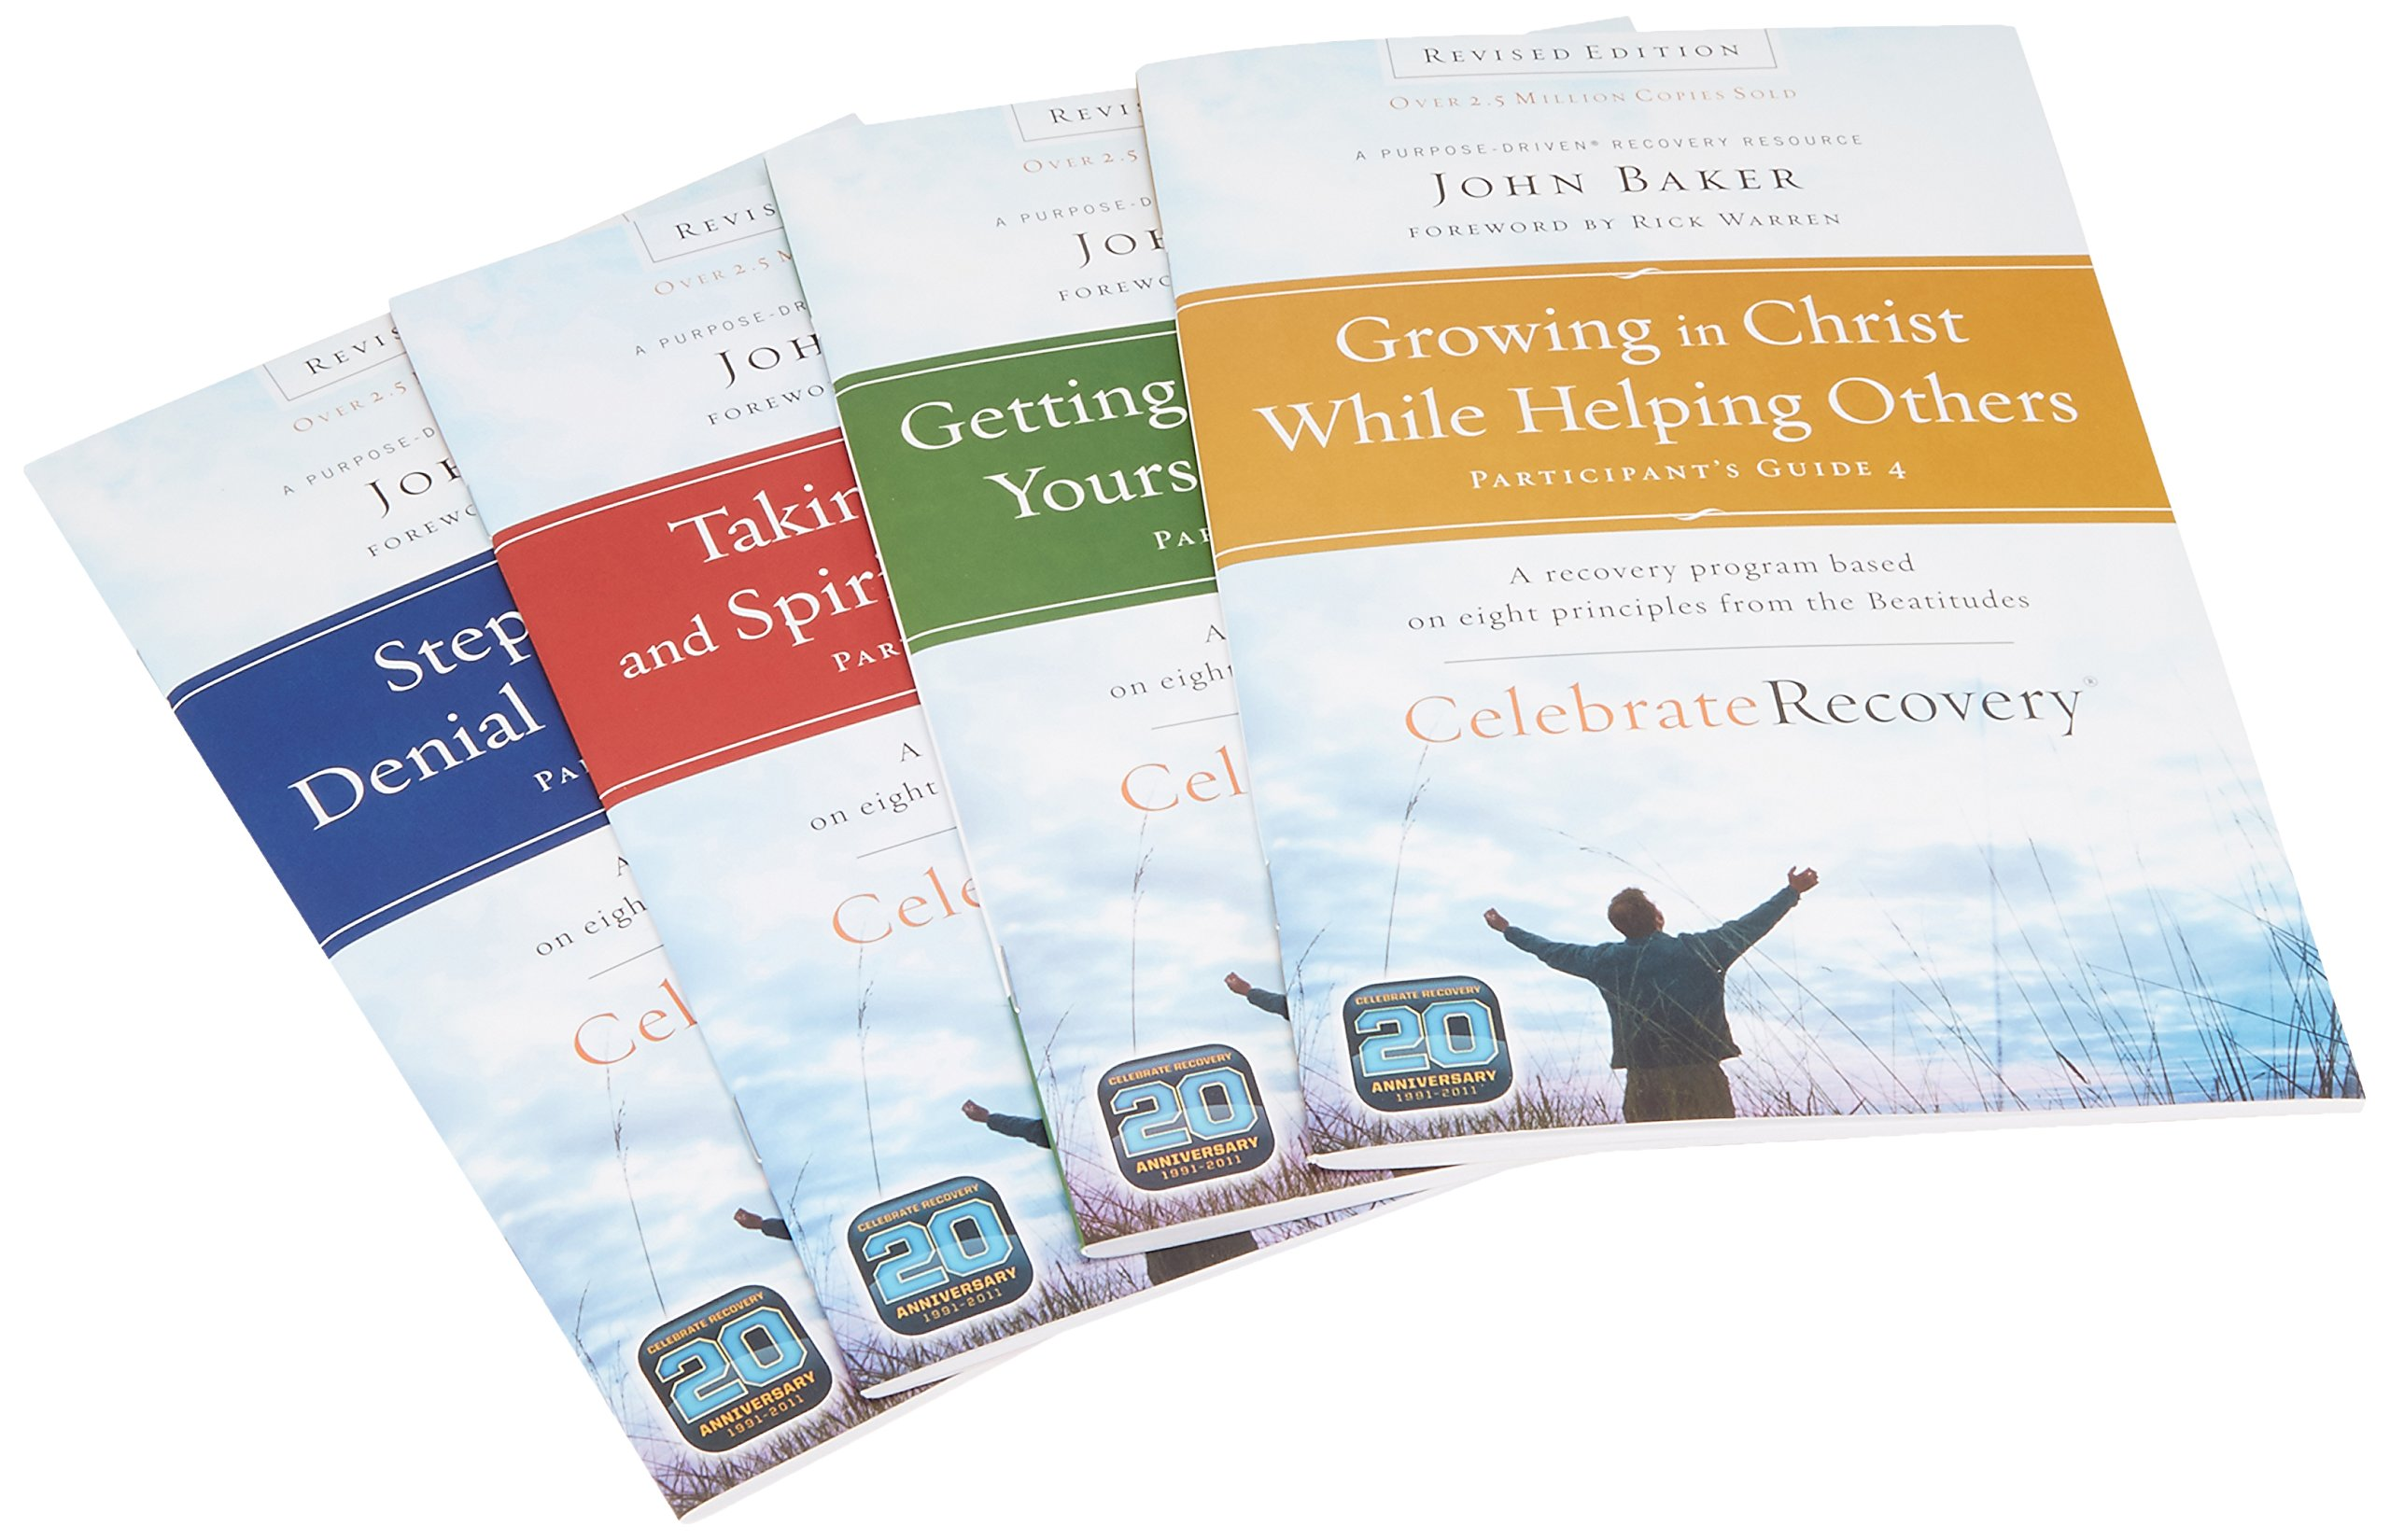 Download Celebrate Recovery Revised Edition Participant's Guide Set: A Program for Implementing a Christ-centered Recovery Ministry in Your Church ebook